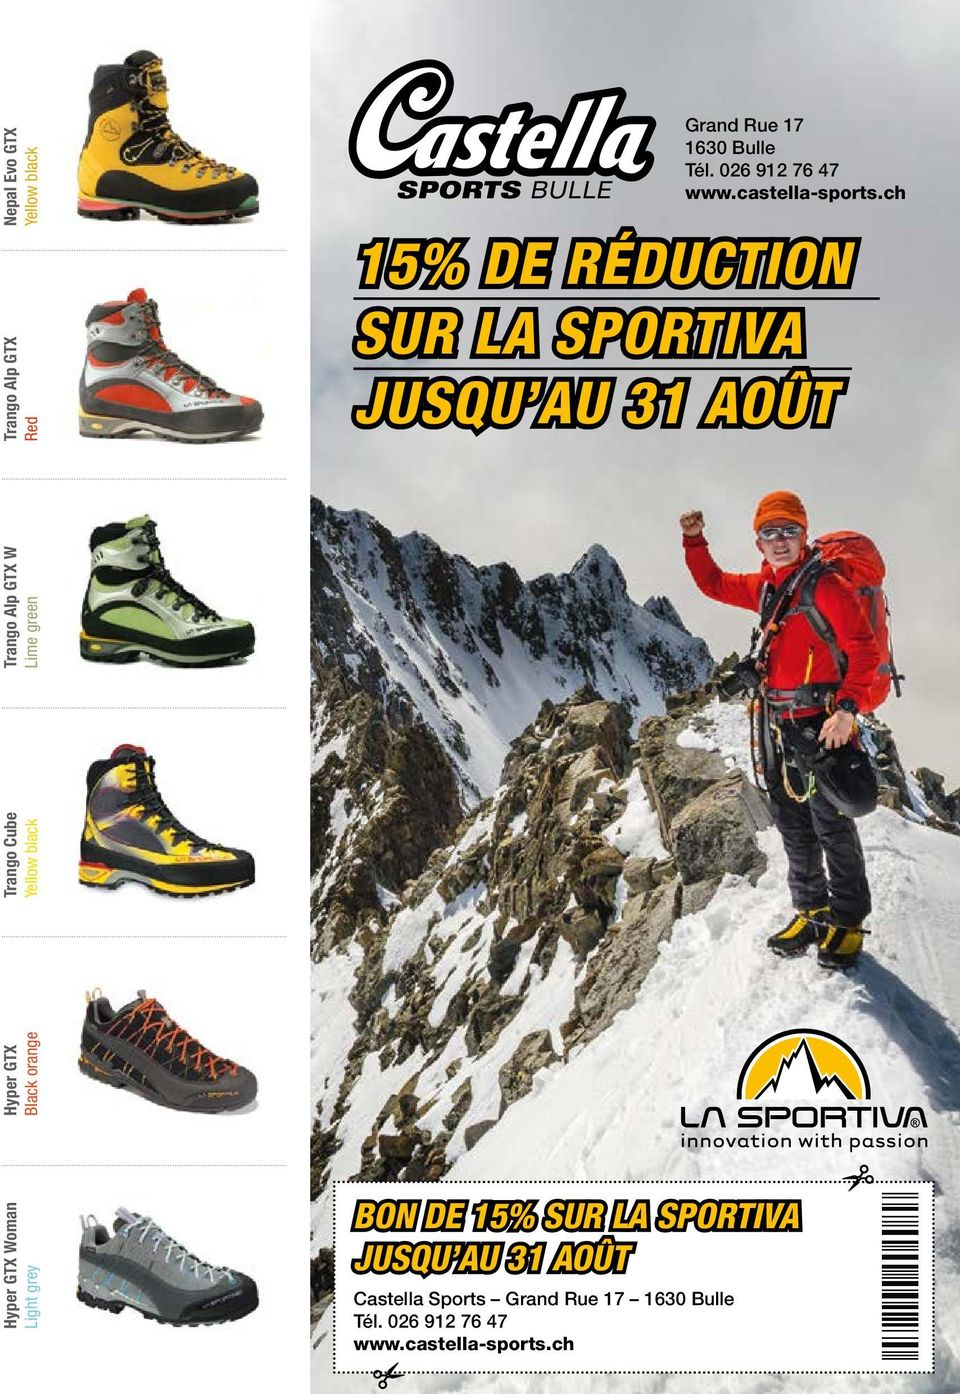 ch 15% DE RÉDUCTION SUR LA SPORTIVA JUSQU AU 31 AOÛT Hyper GTX Black orange Hyper GTX Woman Light grey